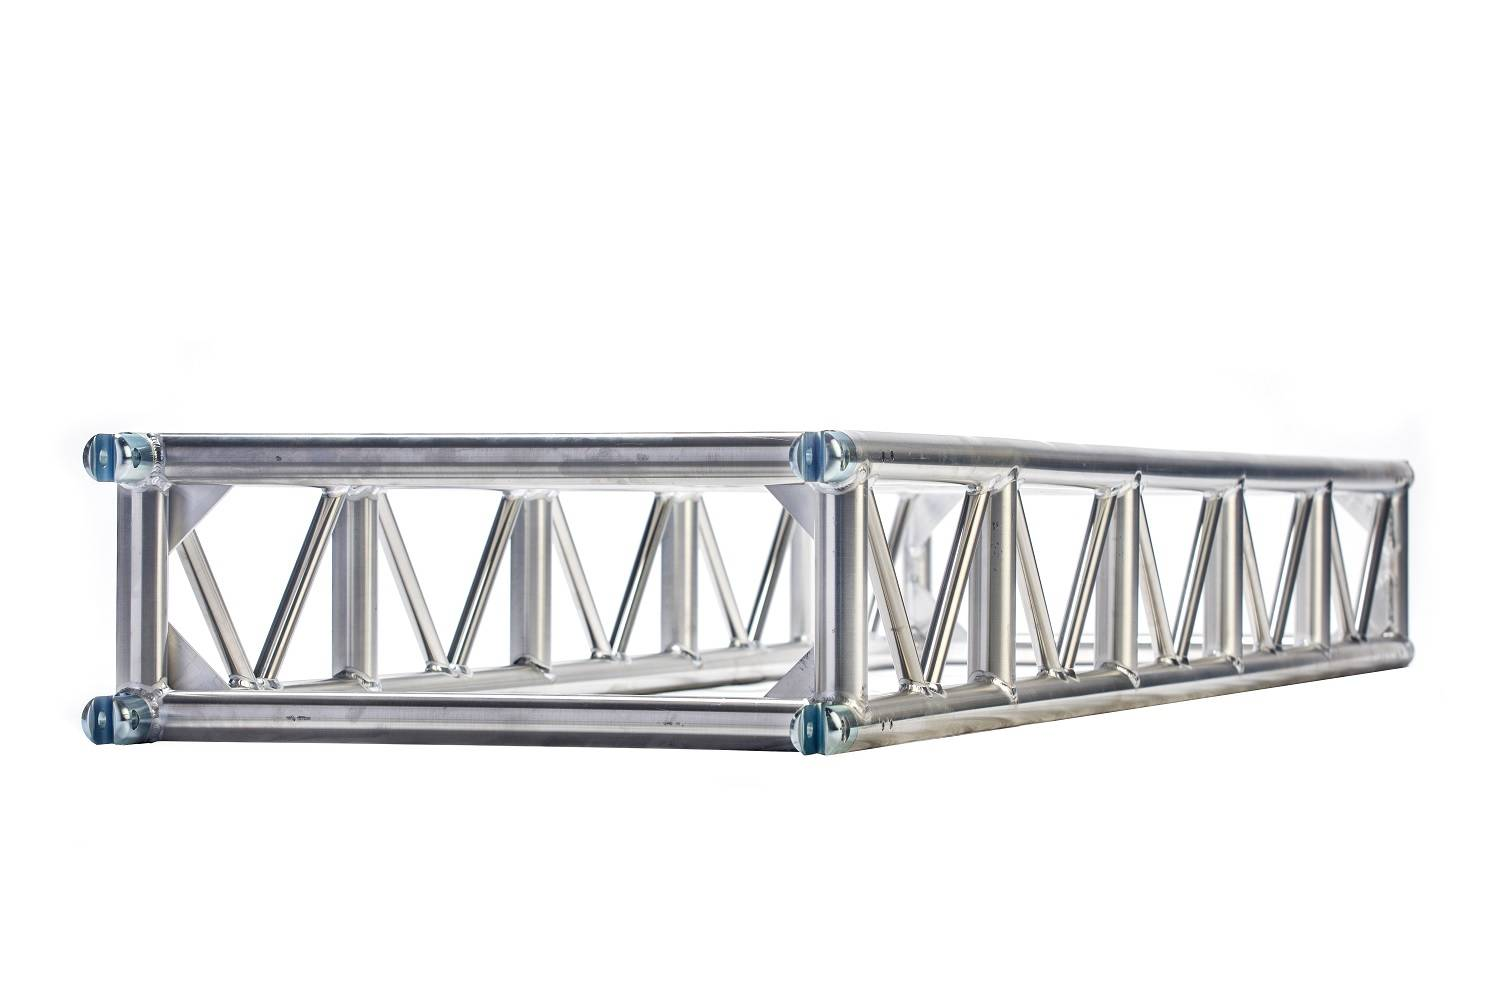 Ballroom truss 12 x 30 spigoted